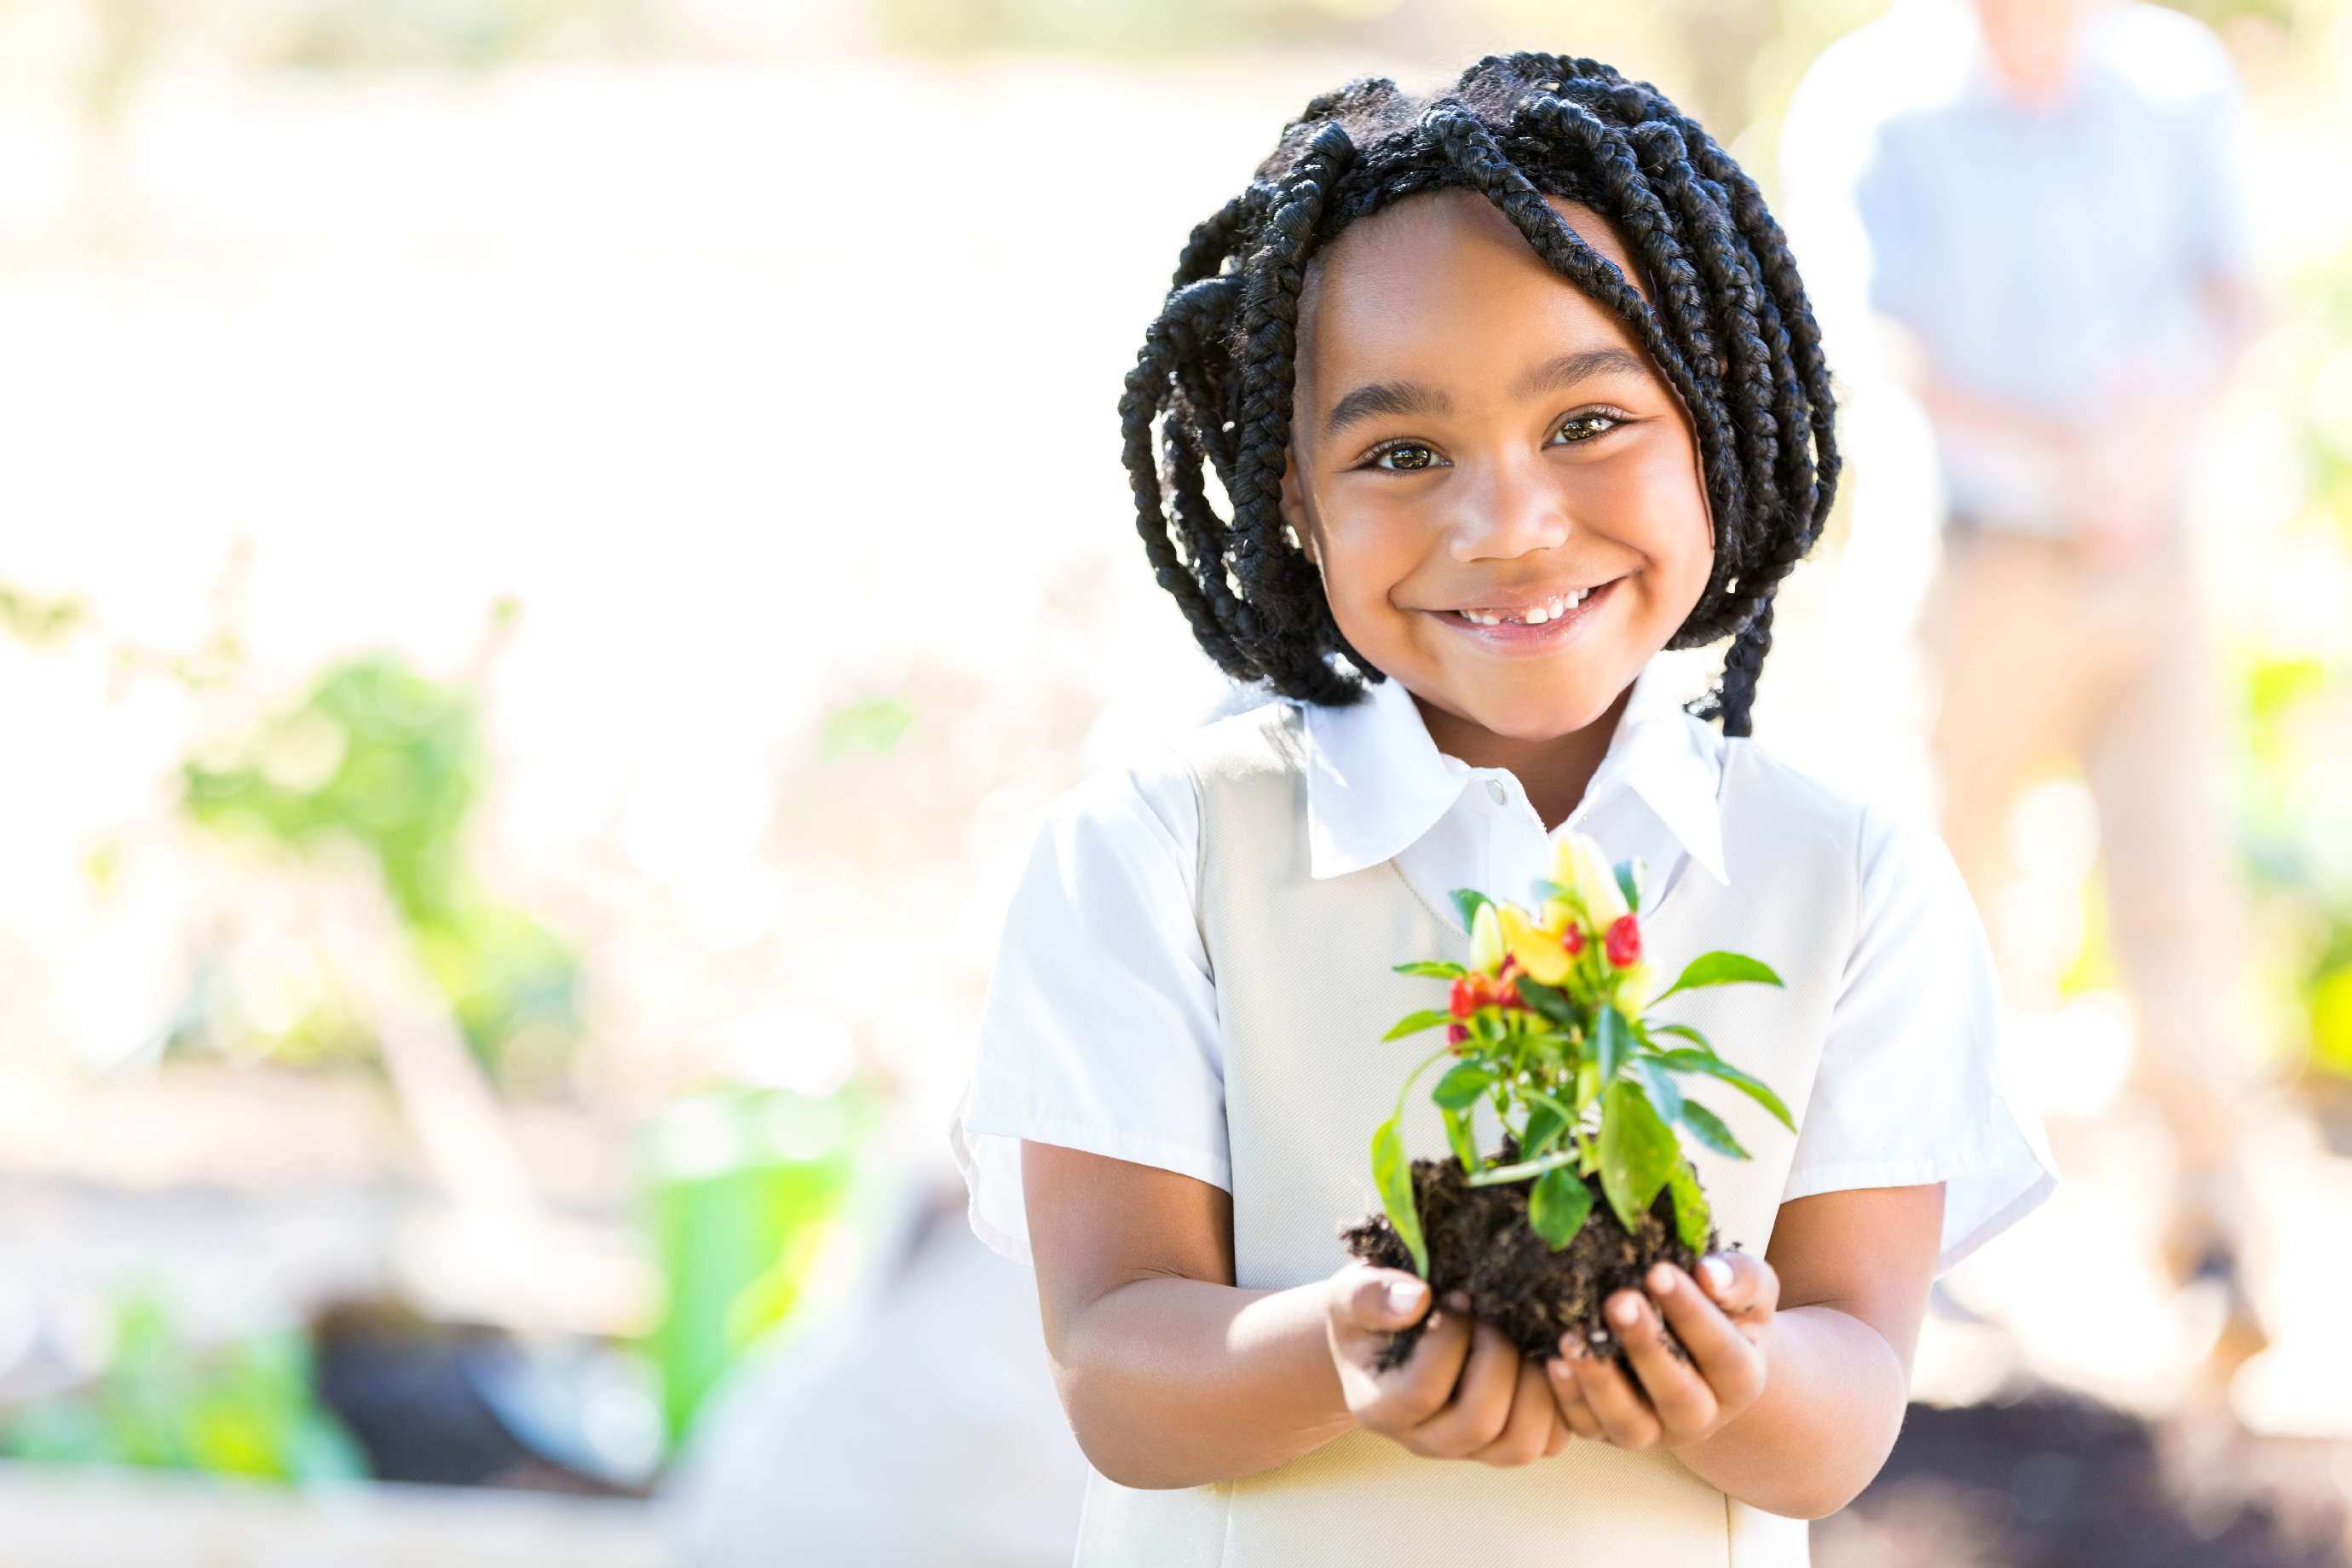 Student holding flower with both hands.